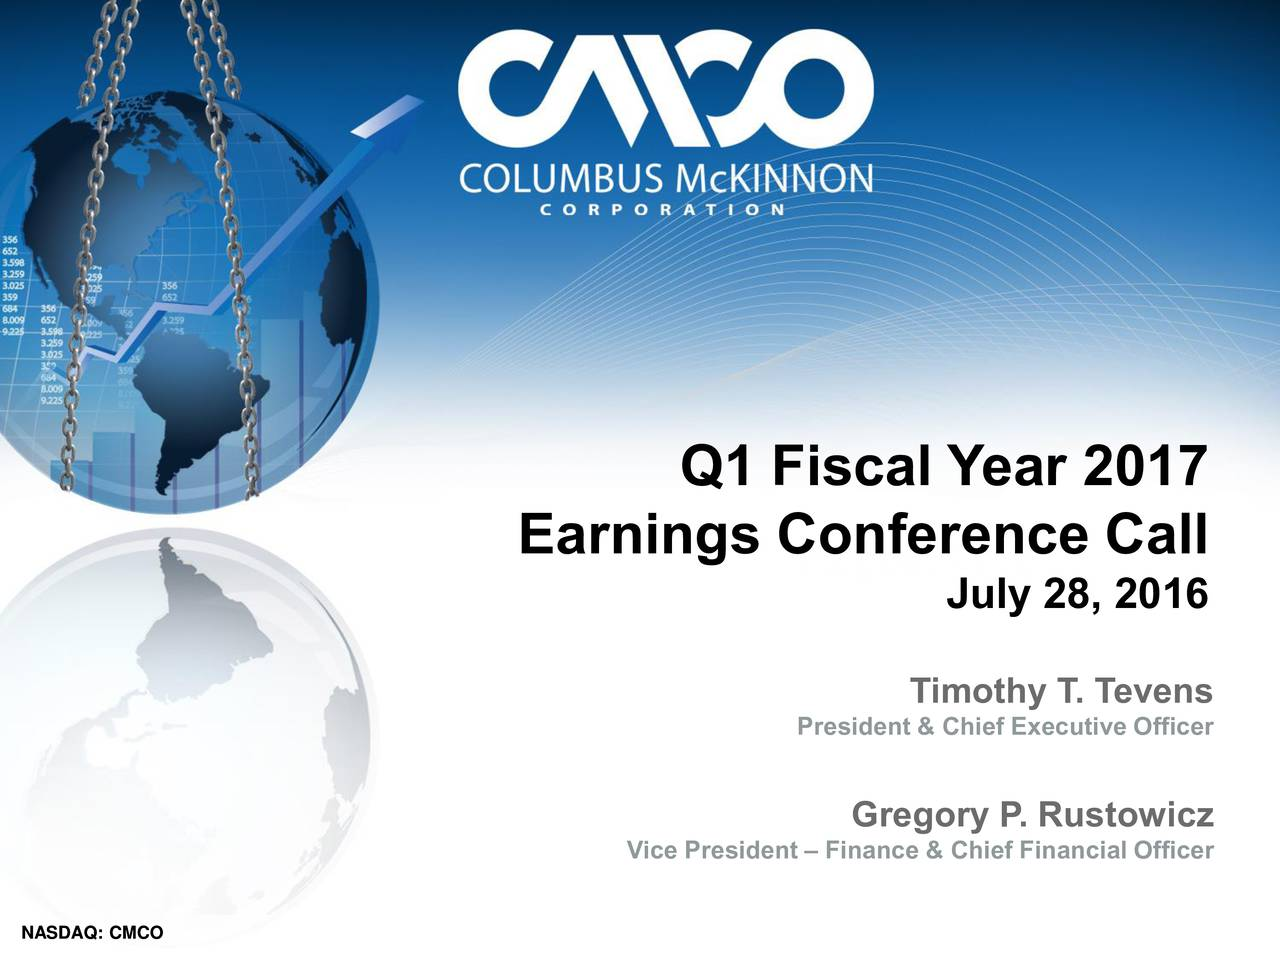 Earnings Conference Call August 2015 July 28, 2016 Timothy T. Tevens President & Chief Executive Officer Gregory P. Rustowicz Vice President  Finance & Chief Financial Officer NASSDAQQ: CMCCO 2015CoumbusMcKinnn Copoaton.AlRghs Reervd.ConfdntalandPopreary..